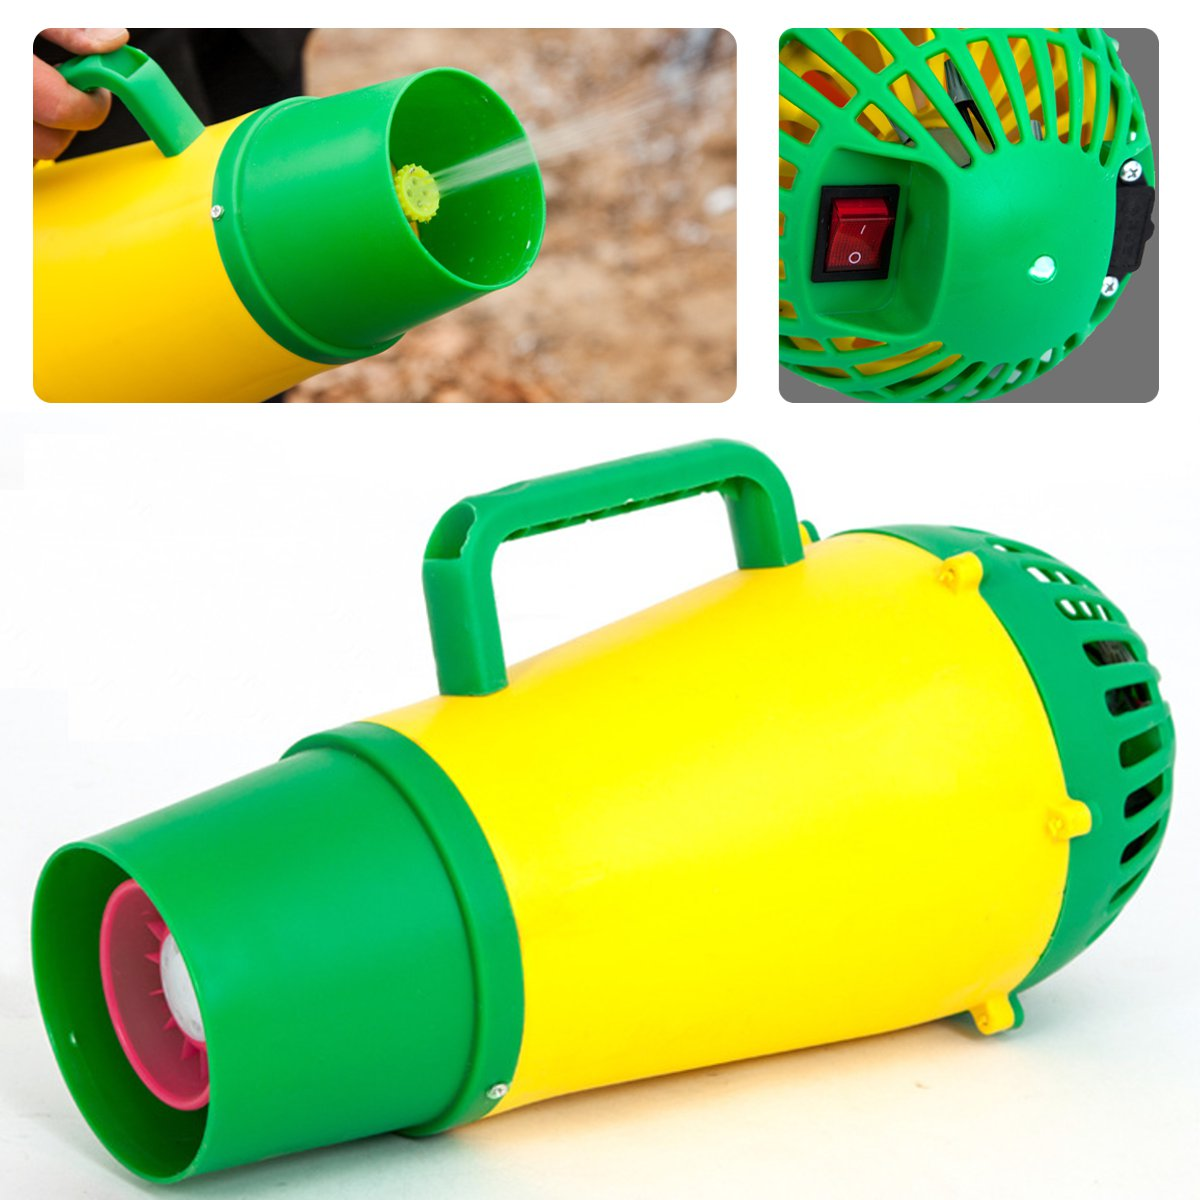 Electric Sprayer Blower Portable Handheld Garden Sprayer Blower Agriculture Pest Control Killer Farm Garden Irrigation Tool